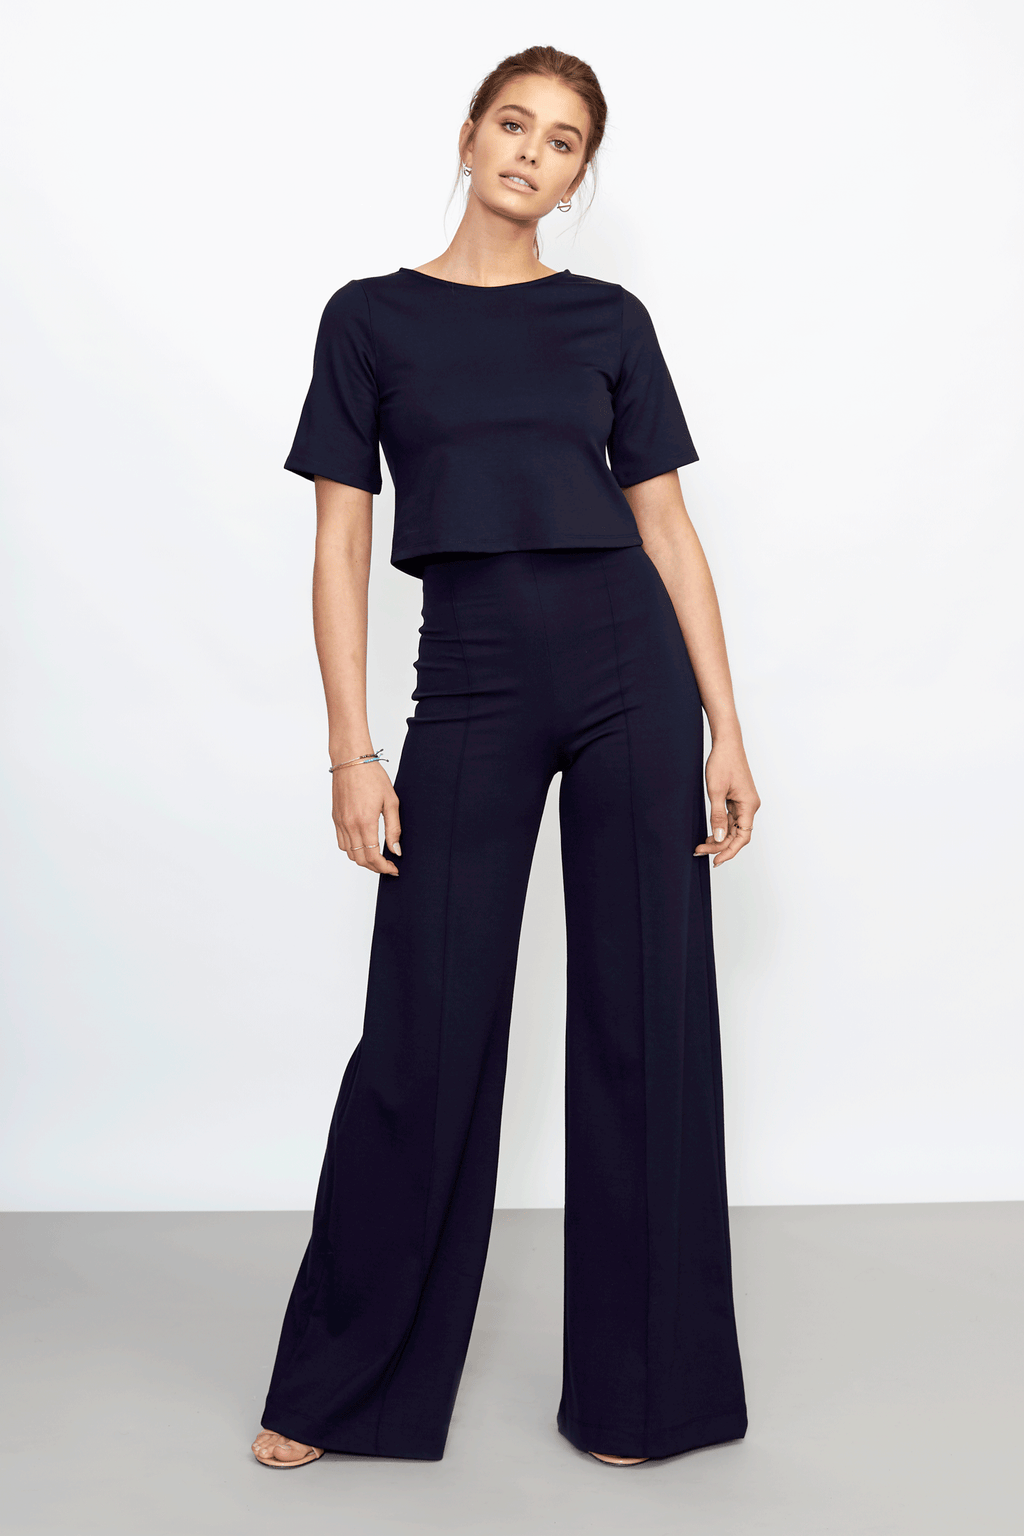 Navy Ponte Knit Wide Leg Pant